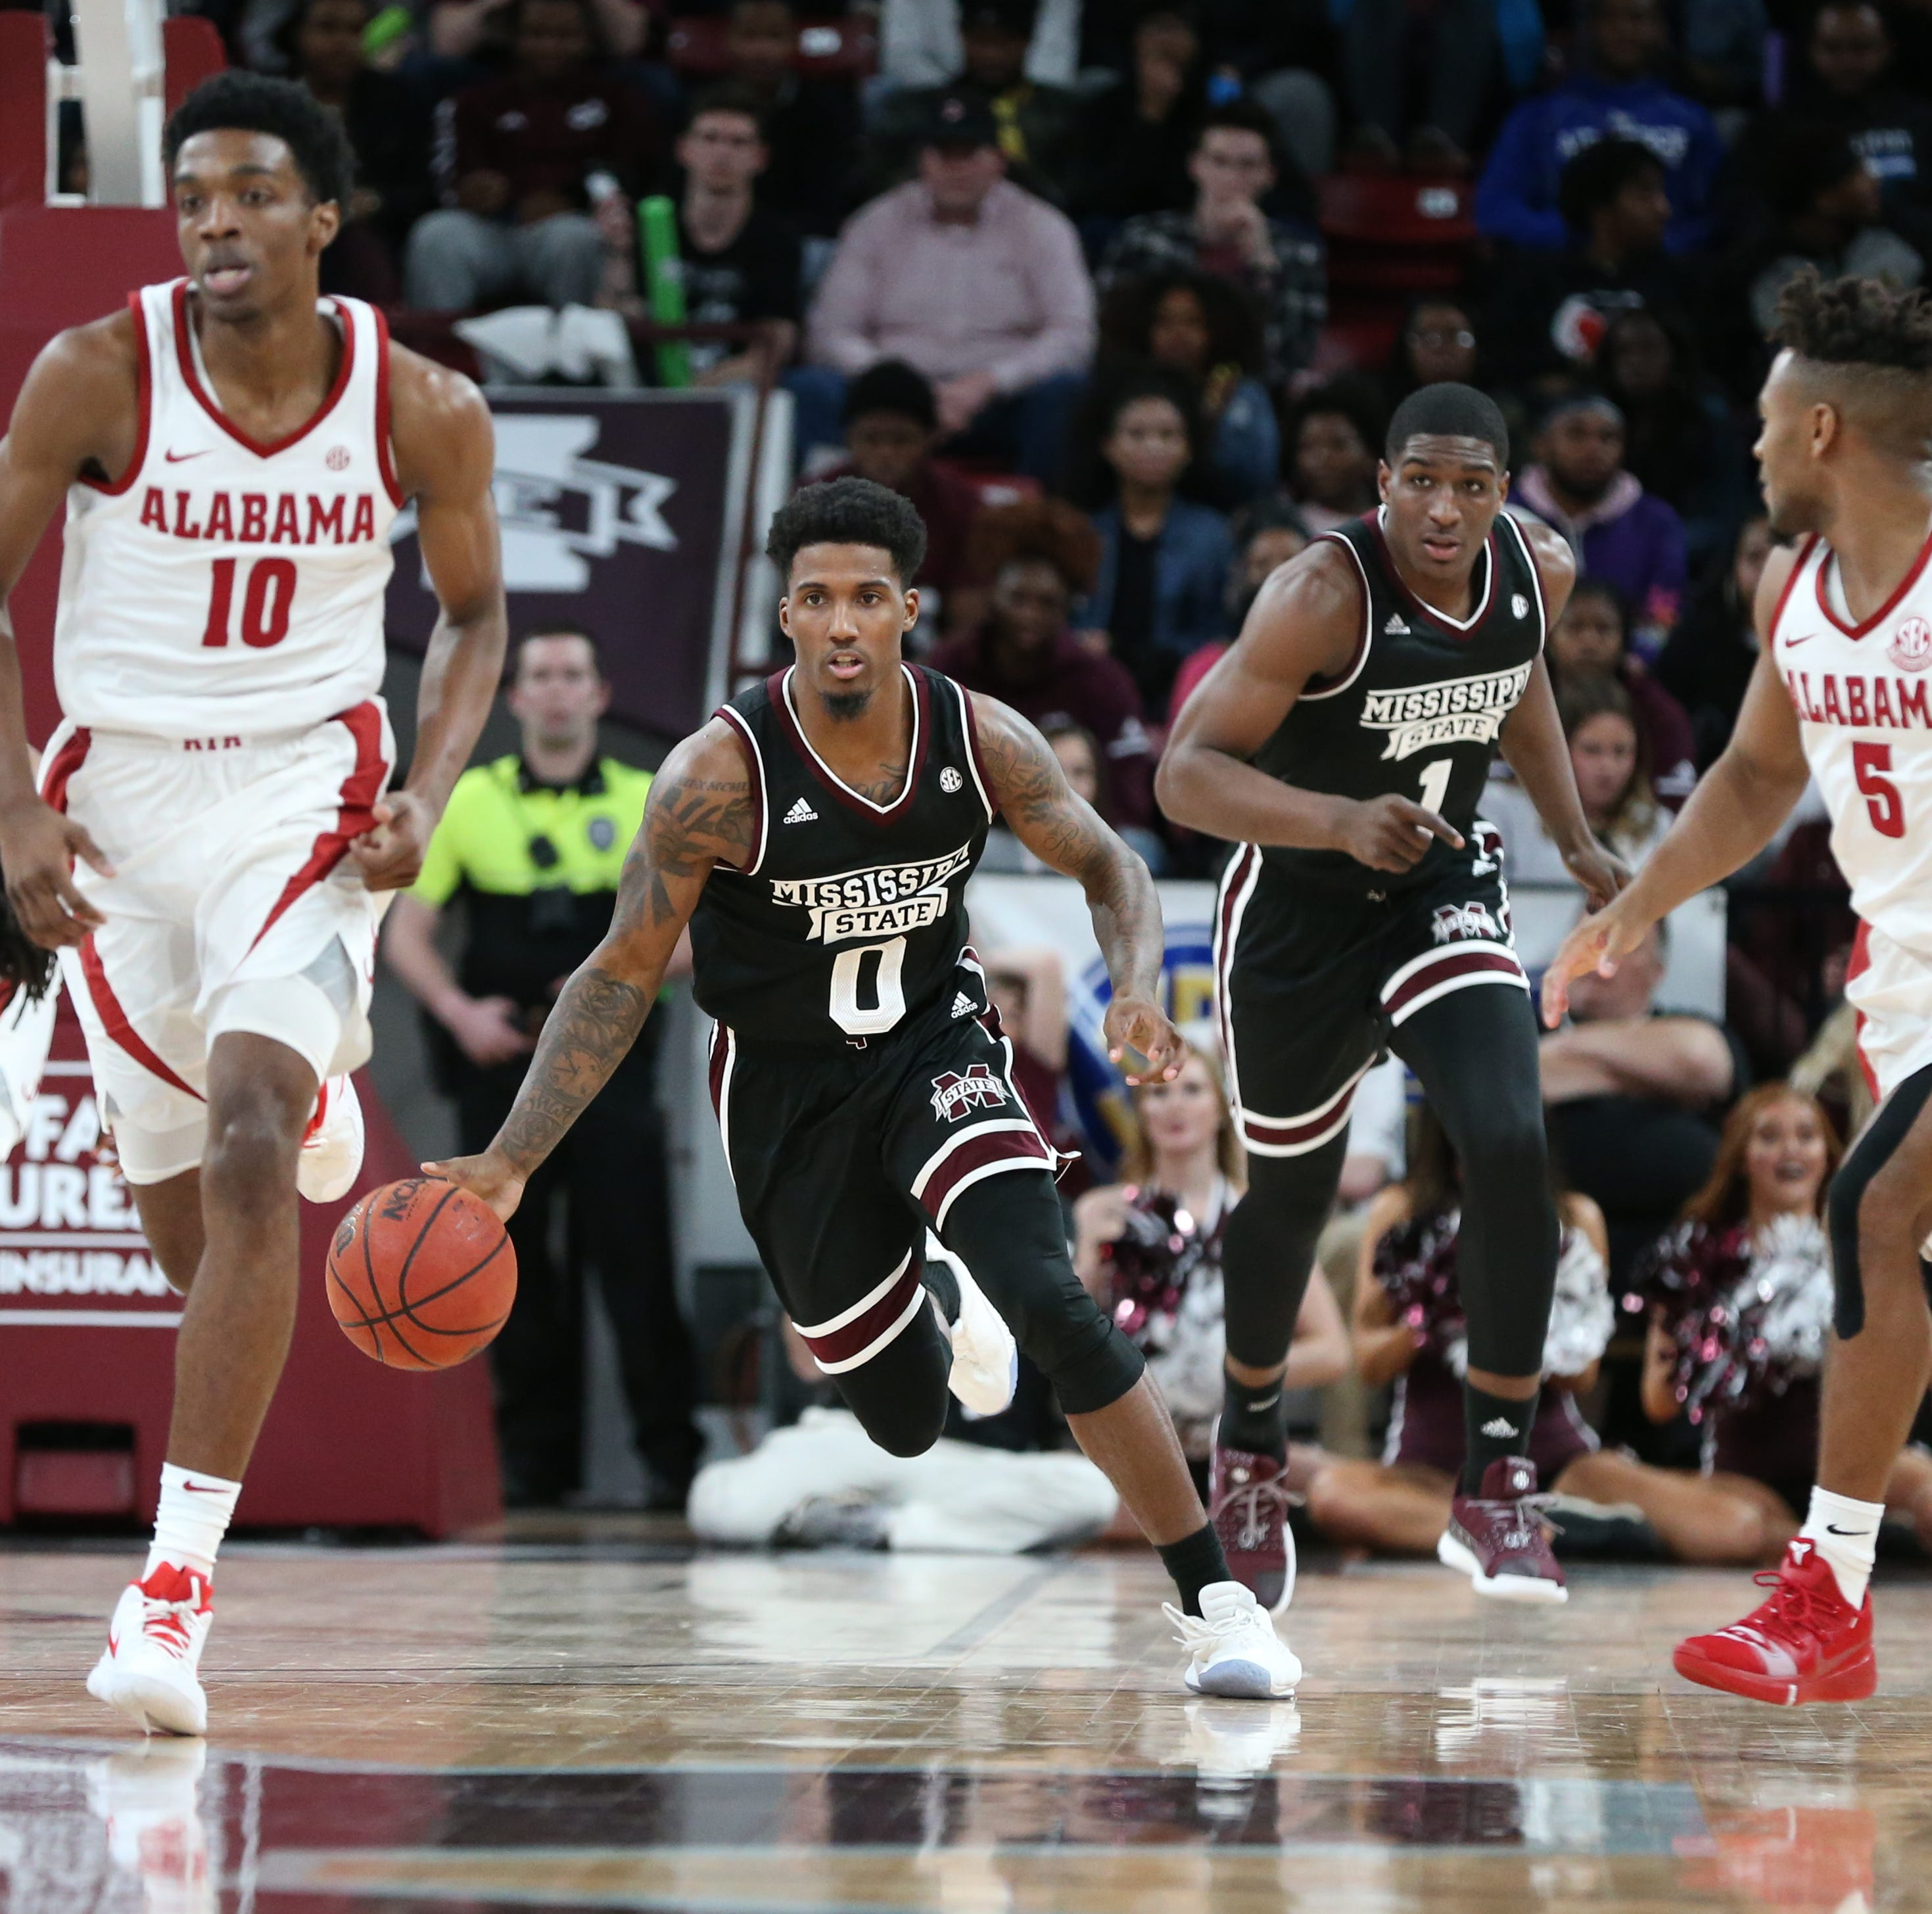 Mississippi State's Nick Weatherspoon suspended indefinitely